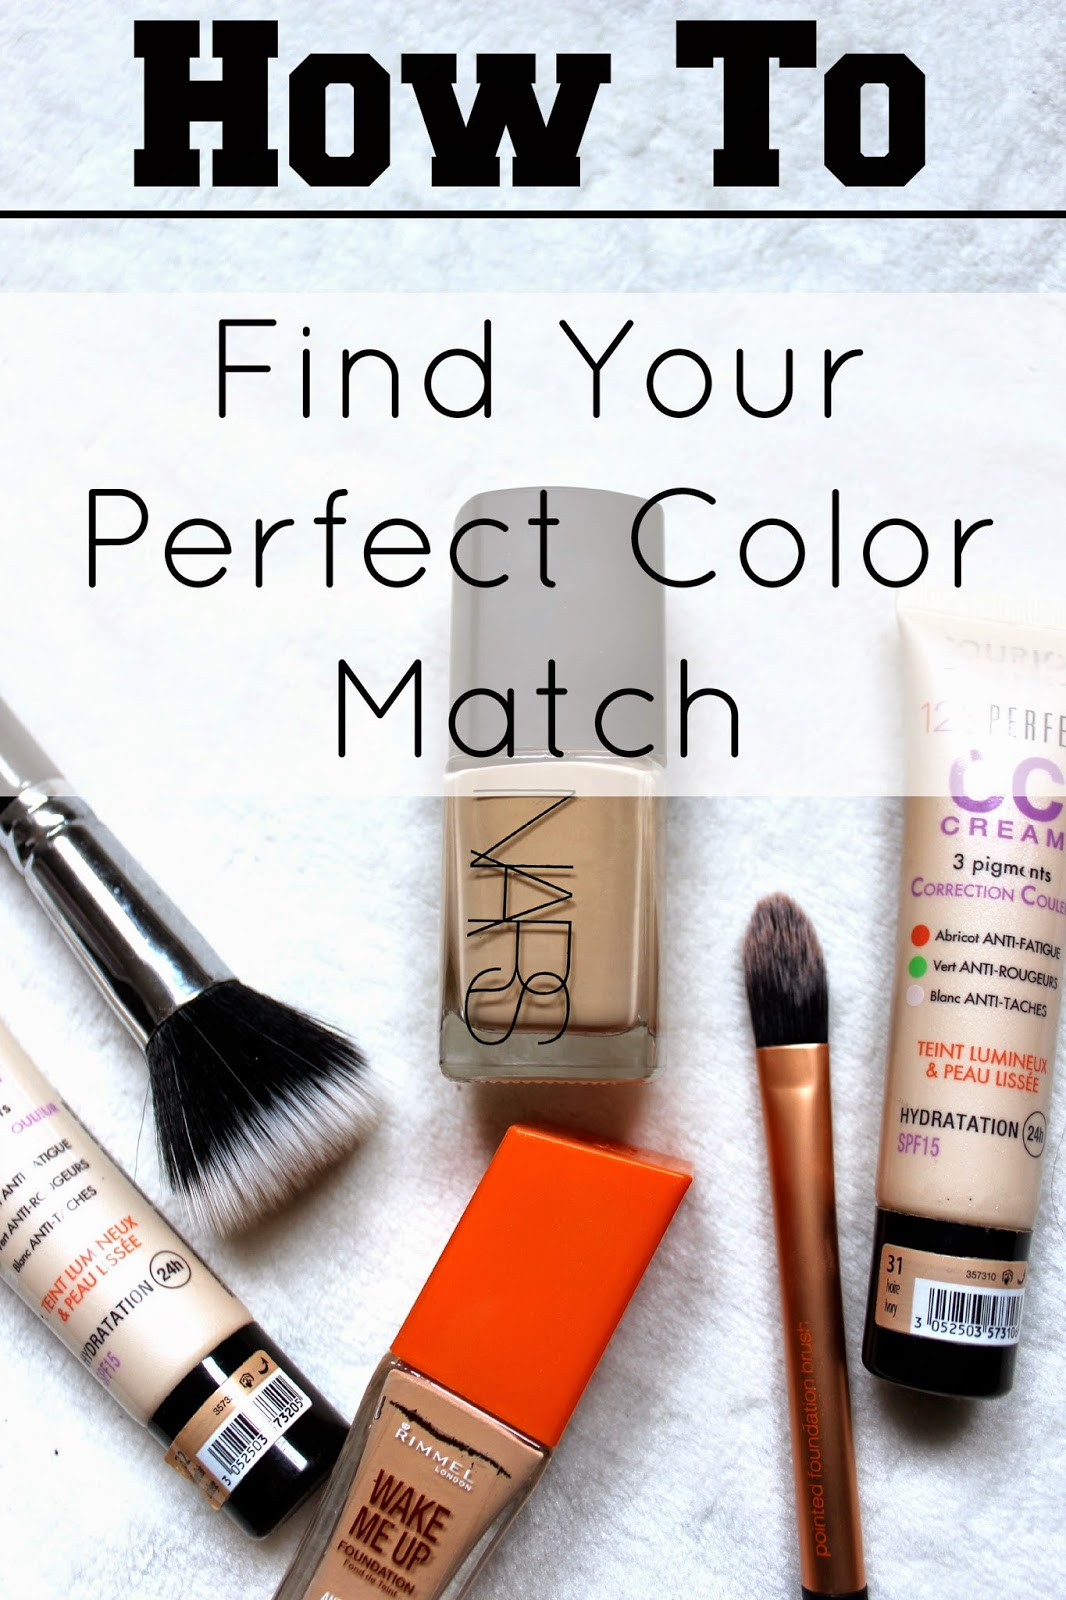 Tips and tricks for finally getting an exact match!